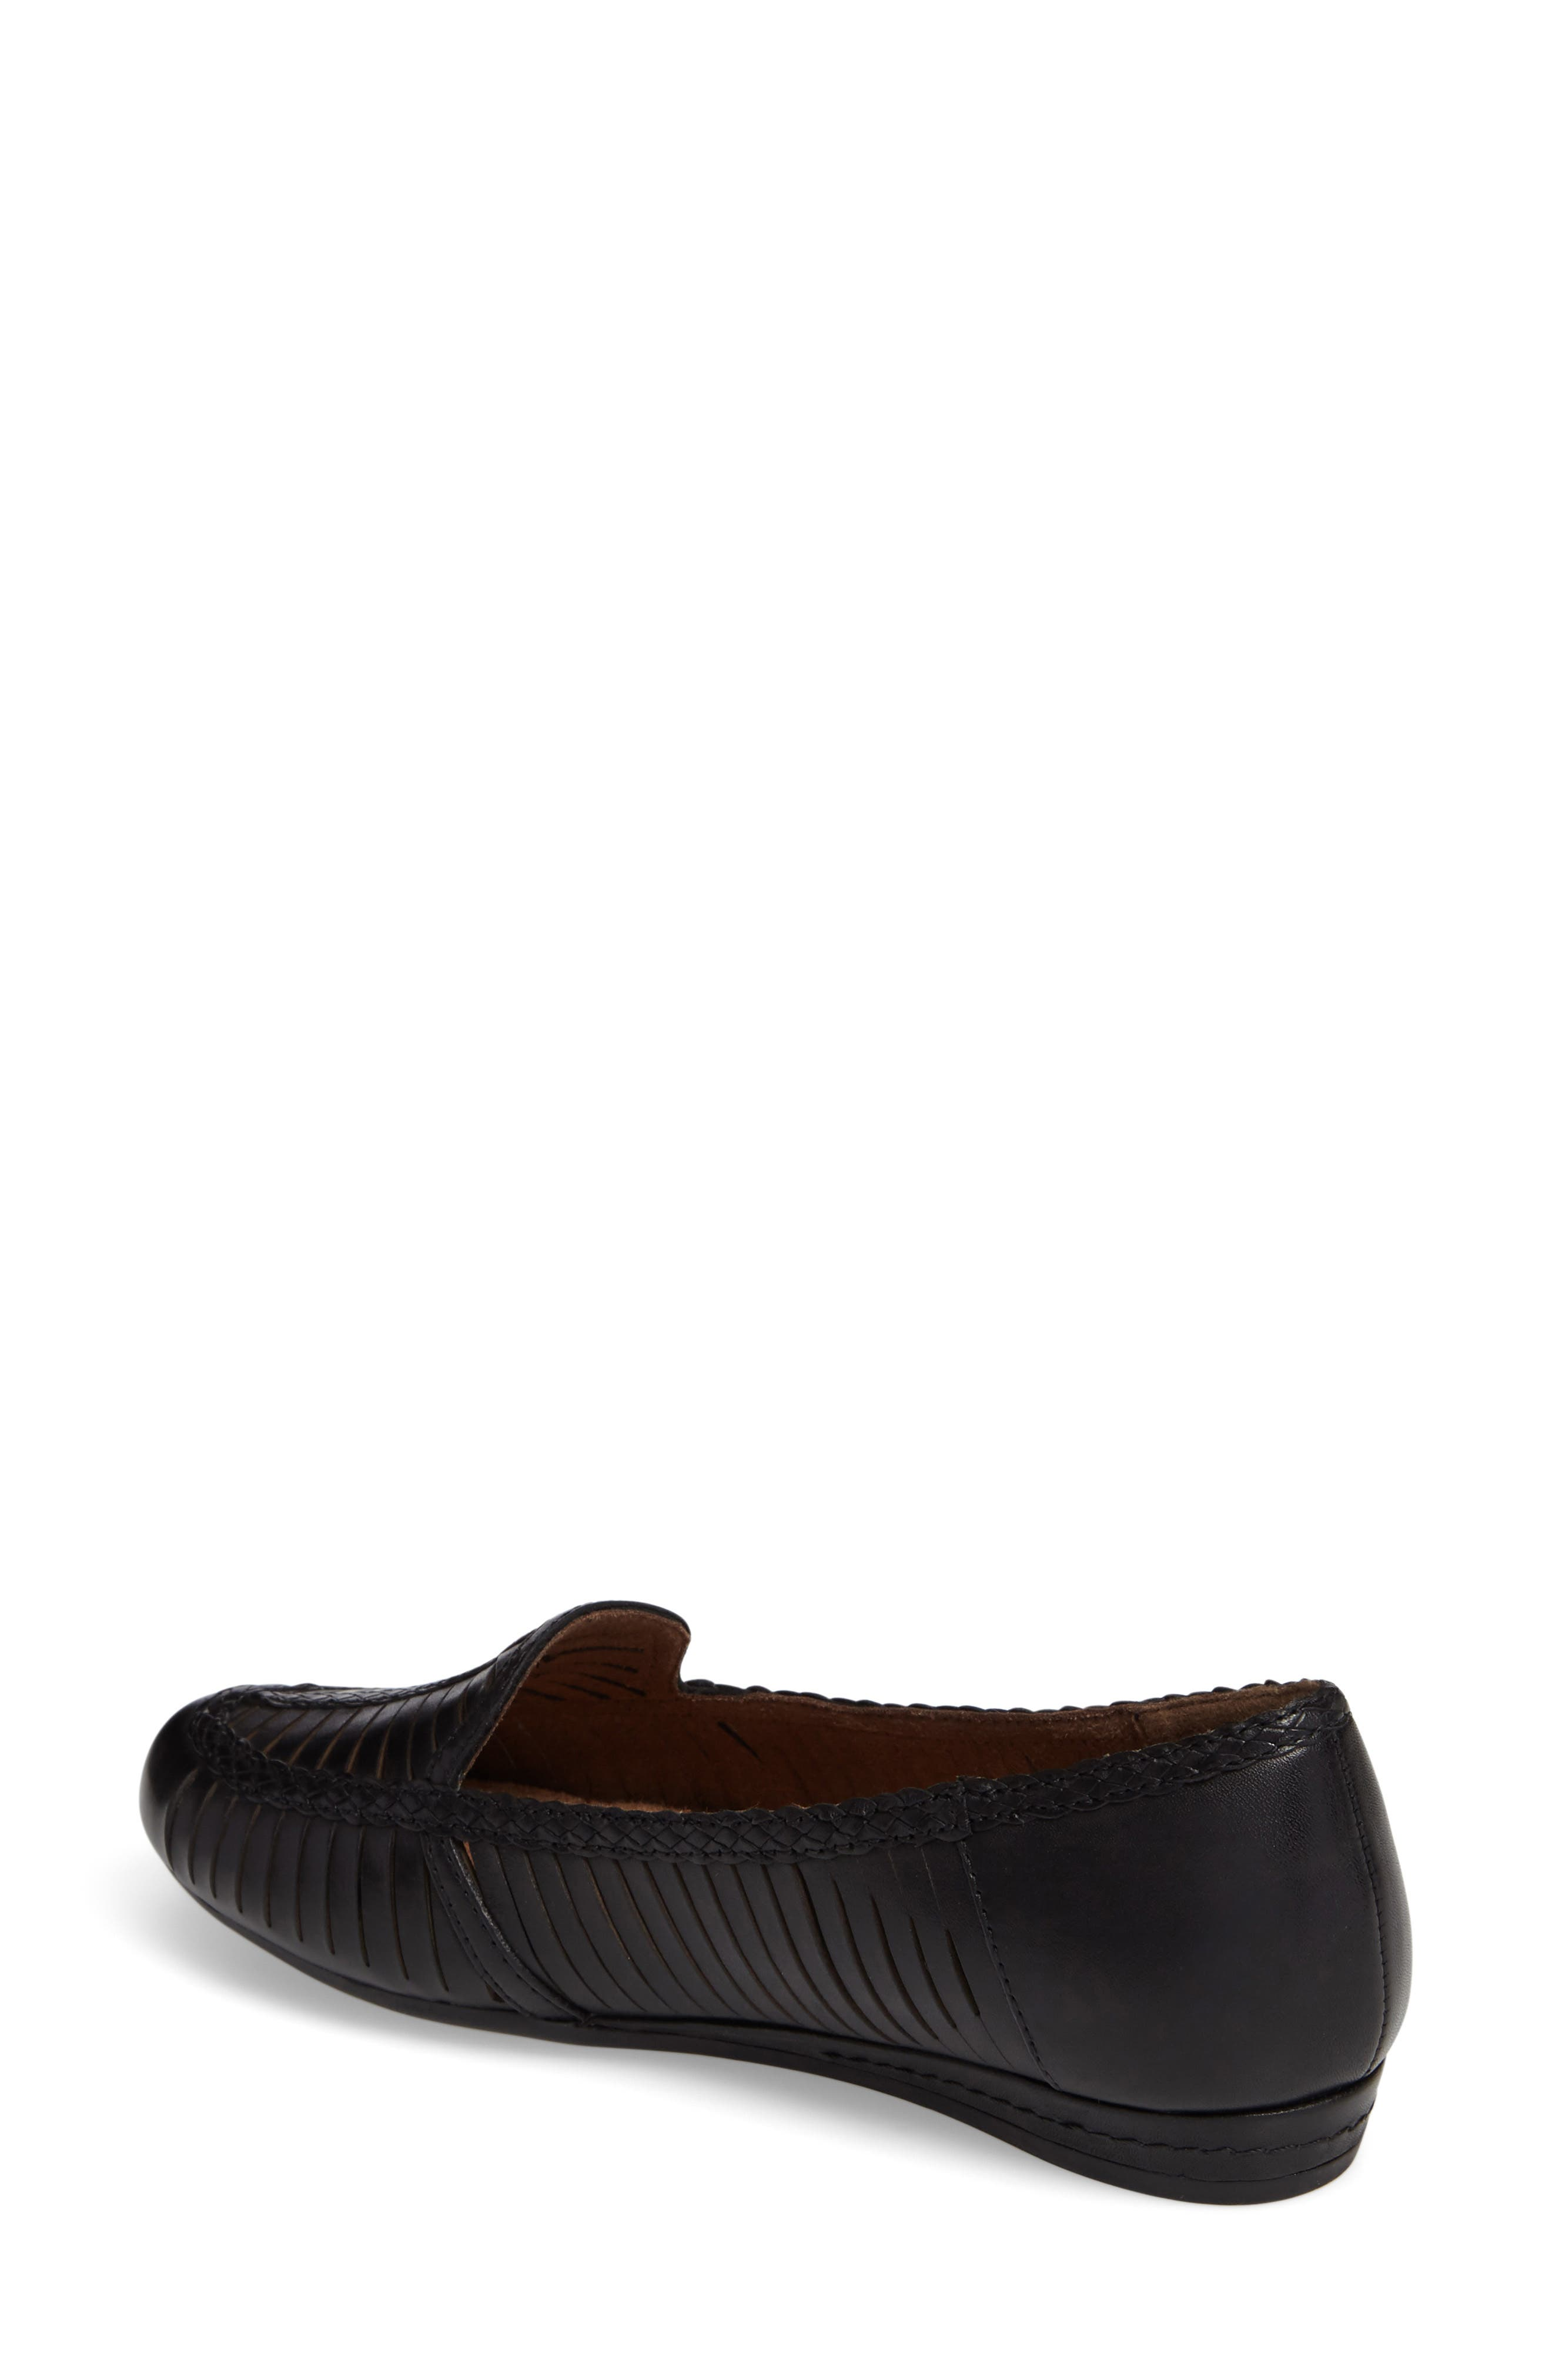 Galway Loafer,                             Alternate thumbnail 2, color,                             001